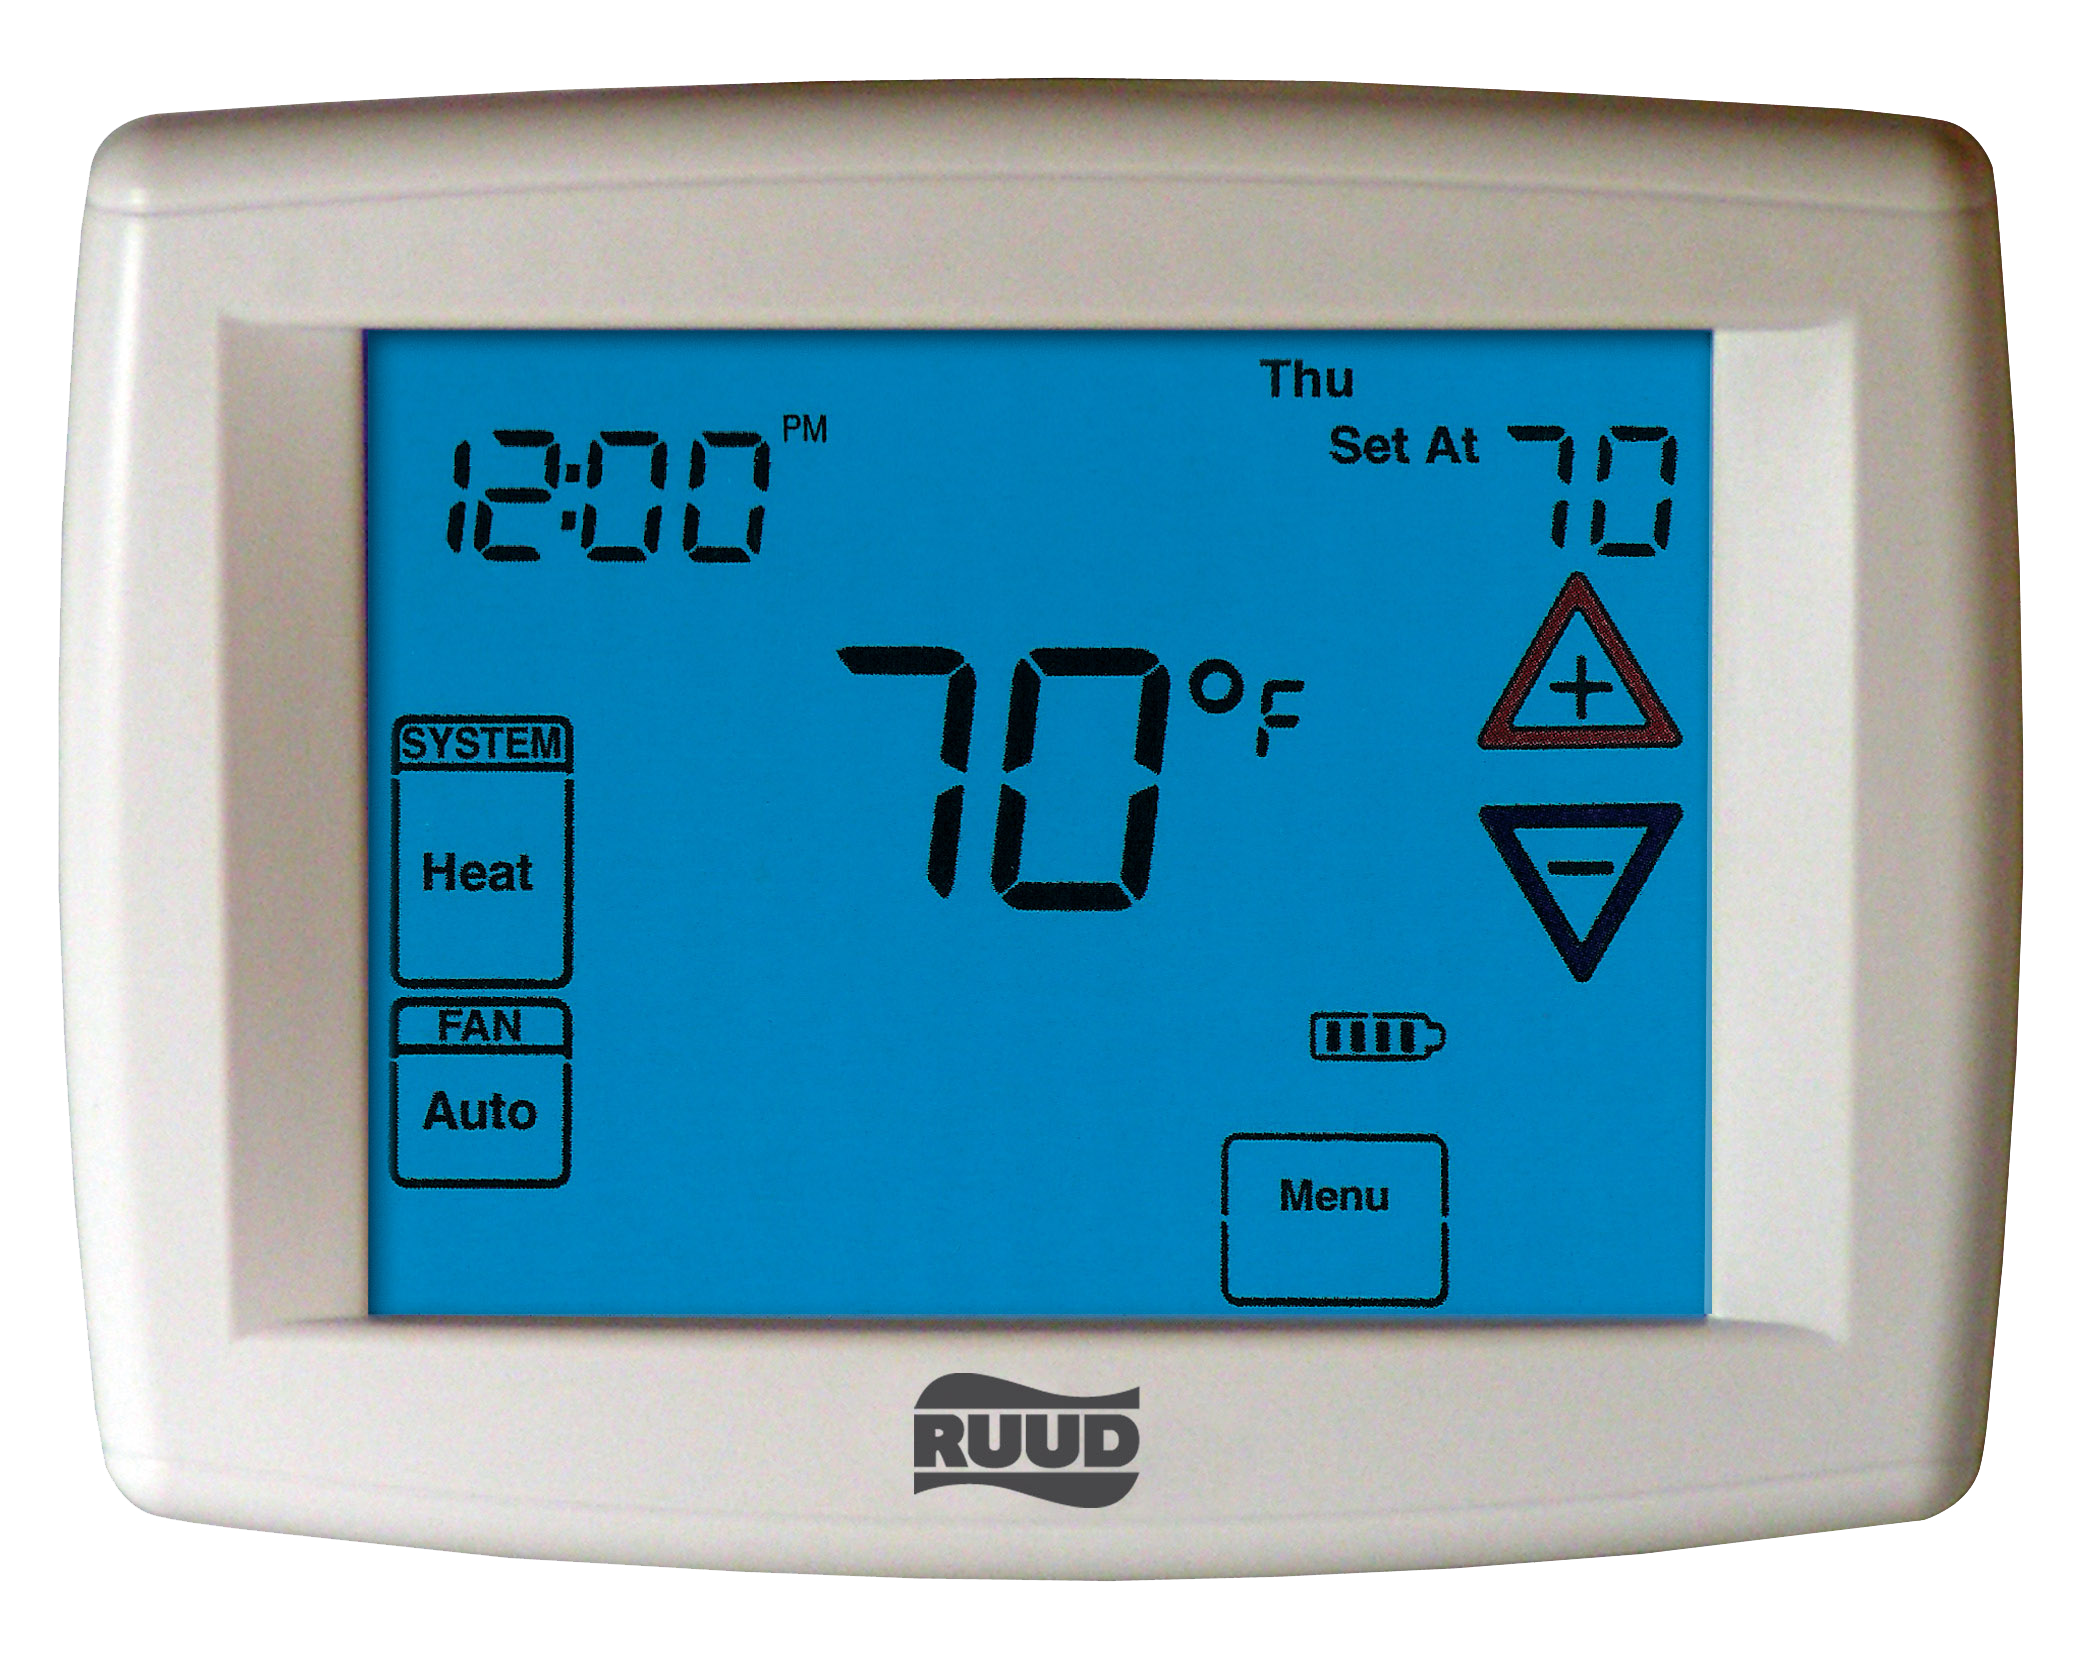 300 Series Deluxe Programmable Thermostats Ruud And Digital Thermostat Wiring Diagram Web Product Image